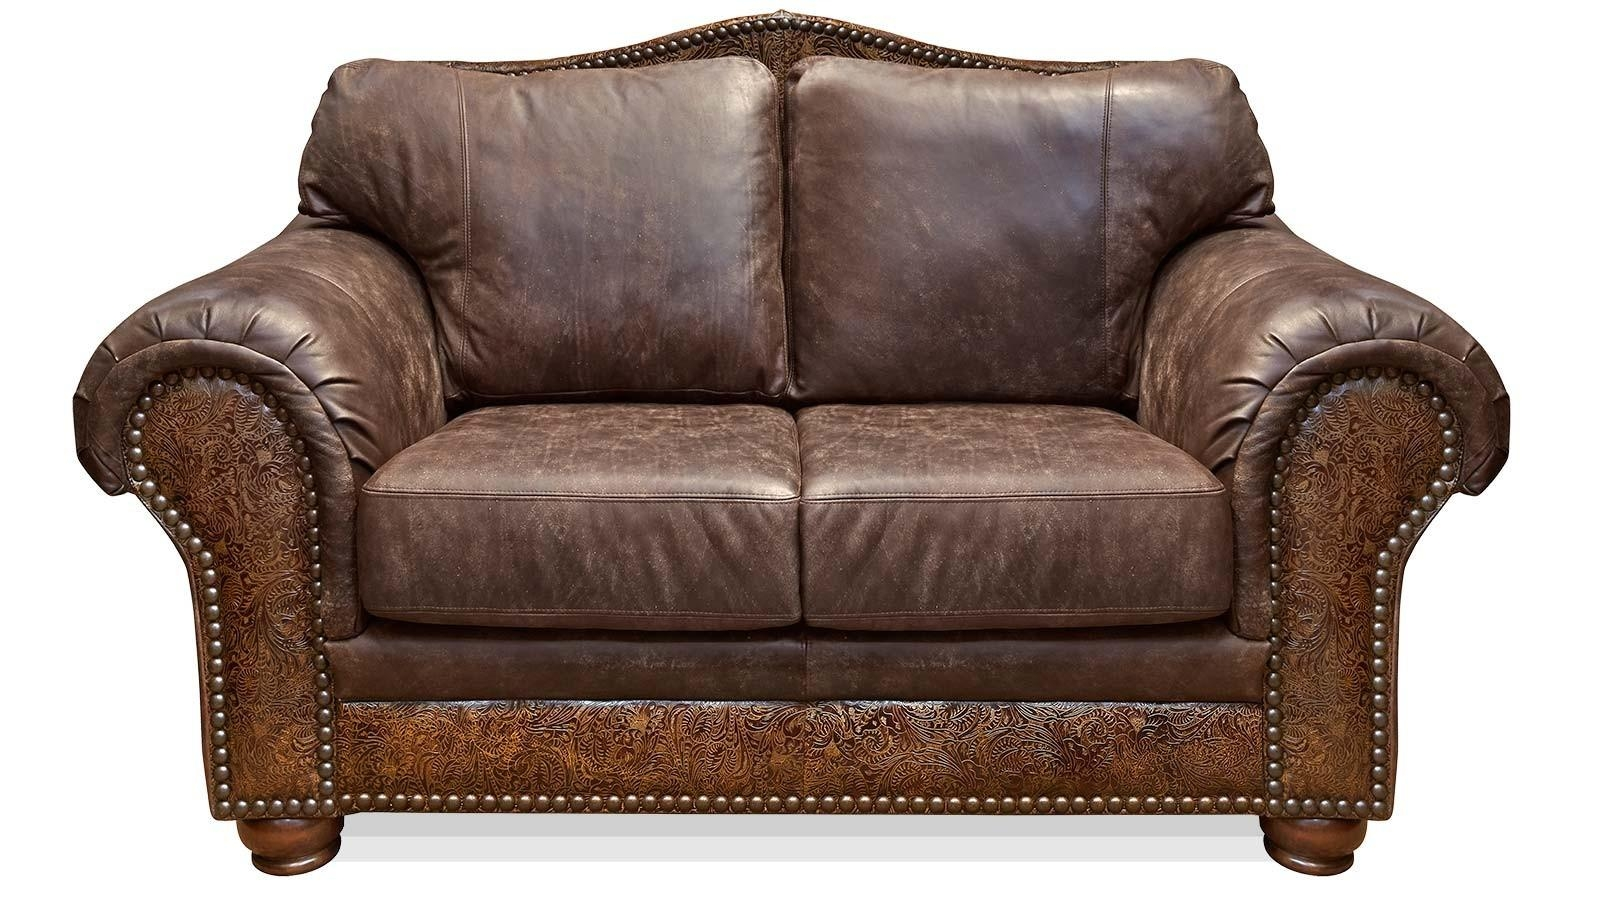 Leather Sofa And Dogs Best Dog Sofa Beds Thesofa